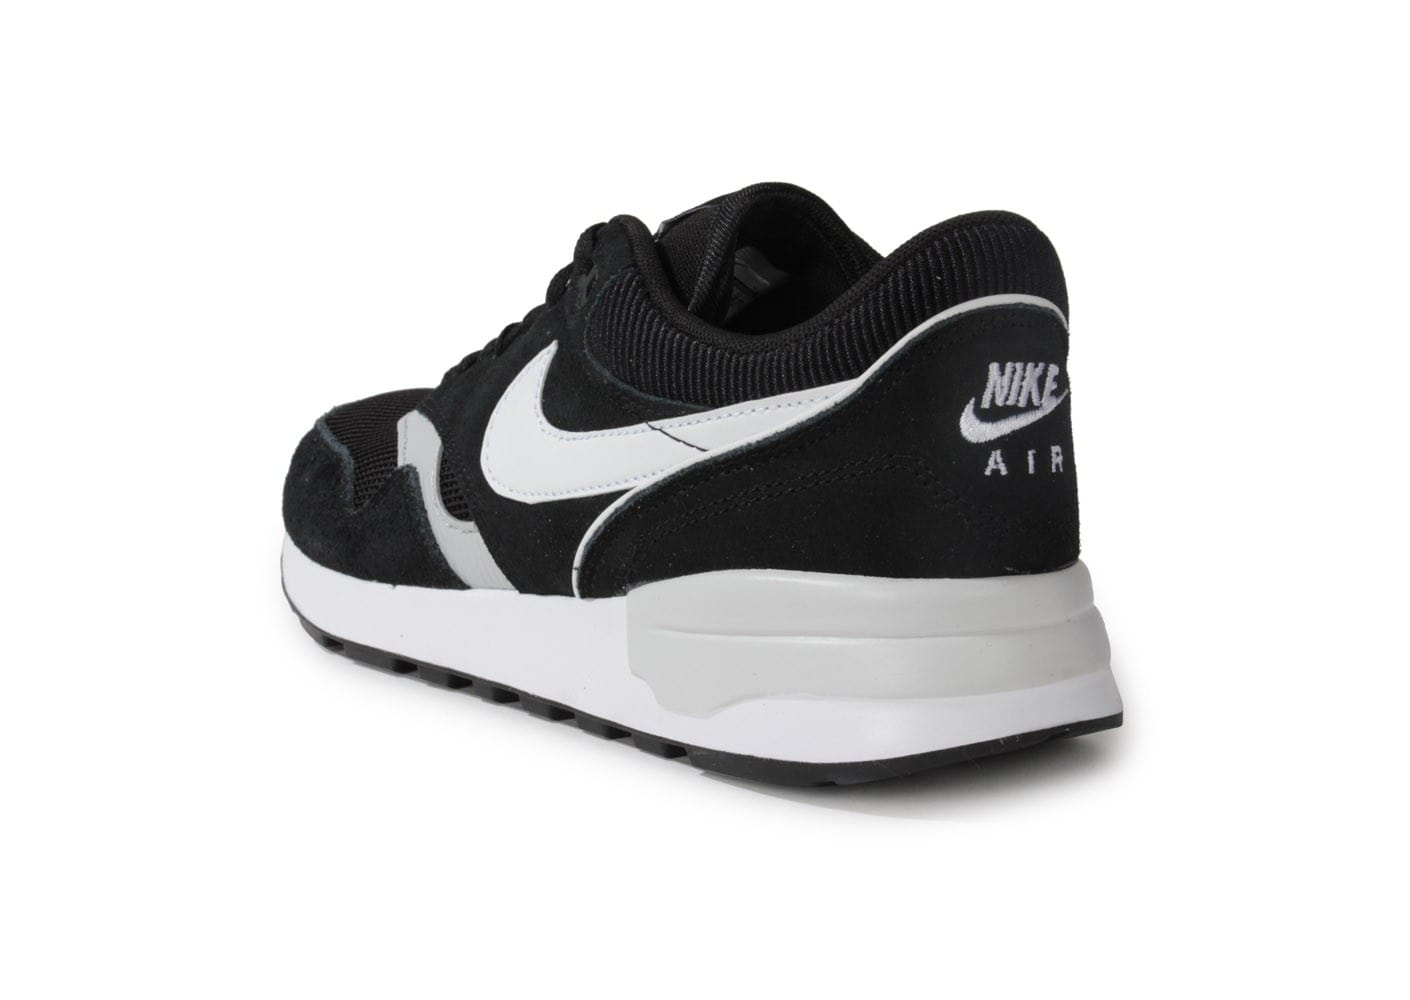 nike air odyssey noire blanche chaussures homme chausport. Black Bedroom Furniture Sets. Home Design Ideas